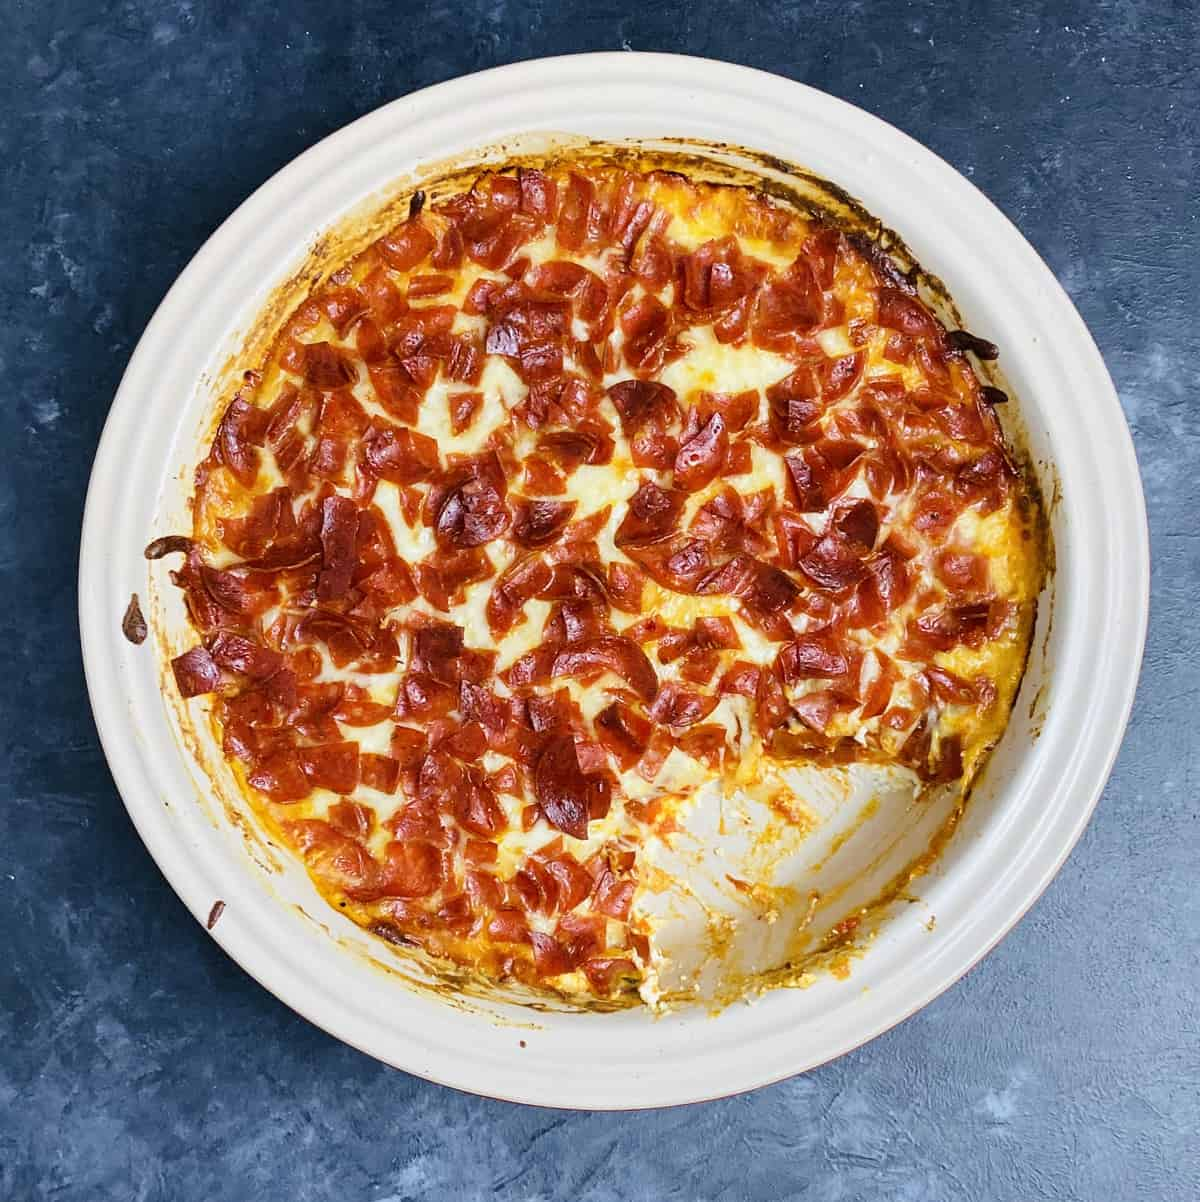 Baked pizza dip recipe with a chunk missing that's been spooned out.